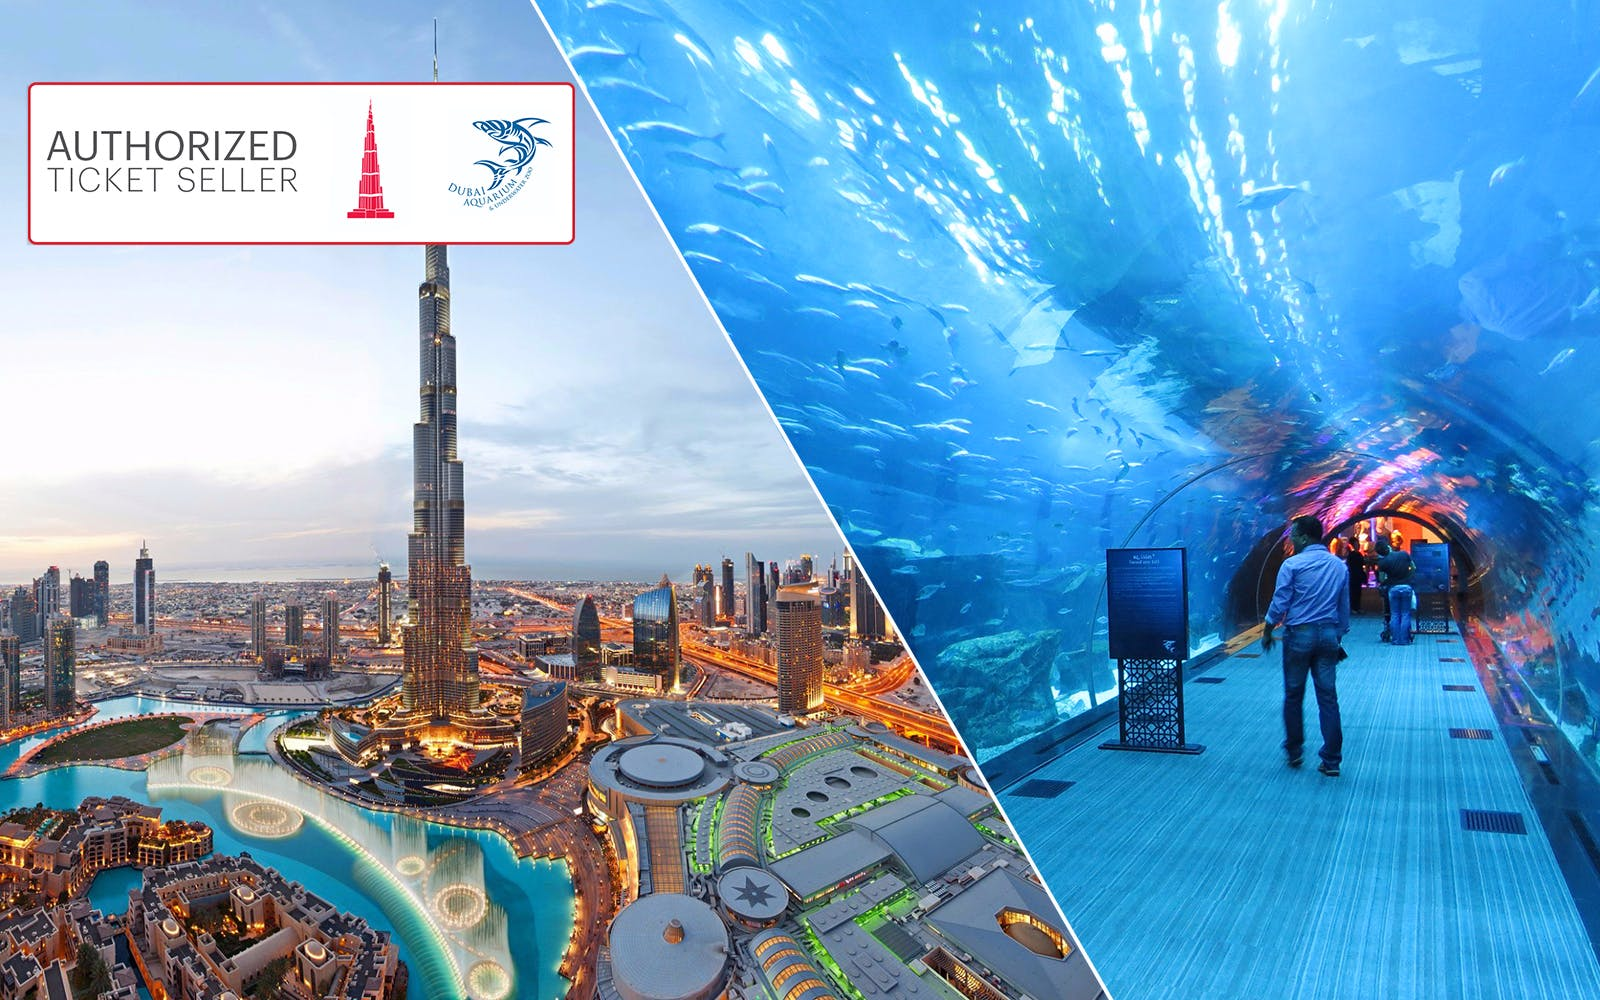 Burj Khalifa and Dubai Aquarium Ticket Combo - Discounted